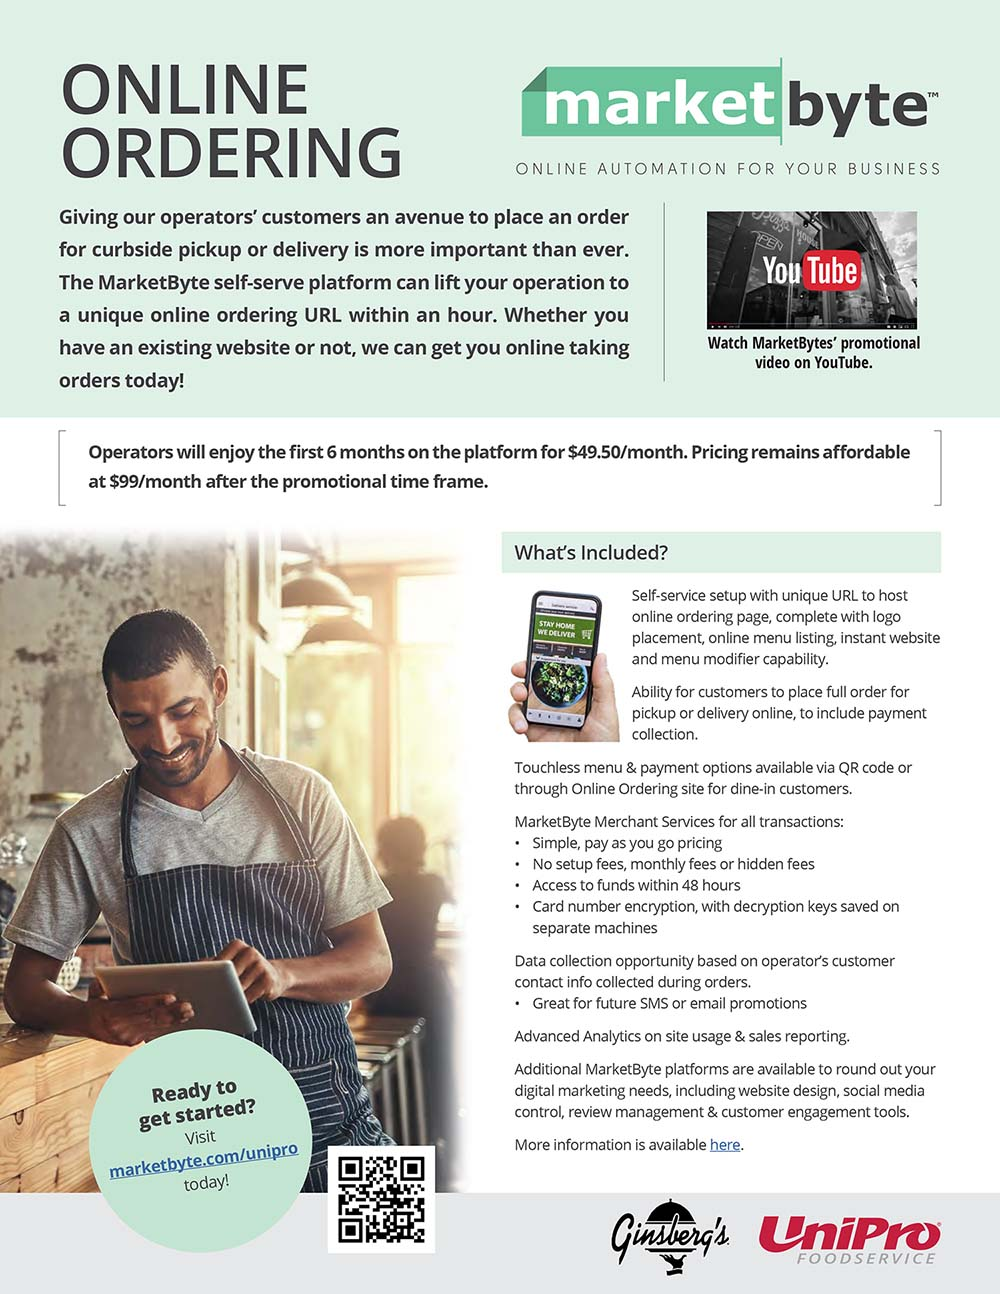 MarketByte online ordering program